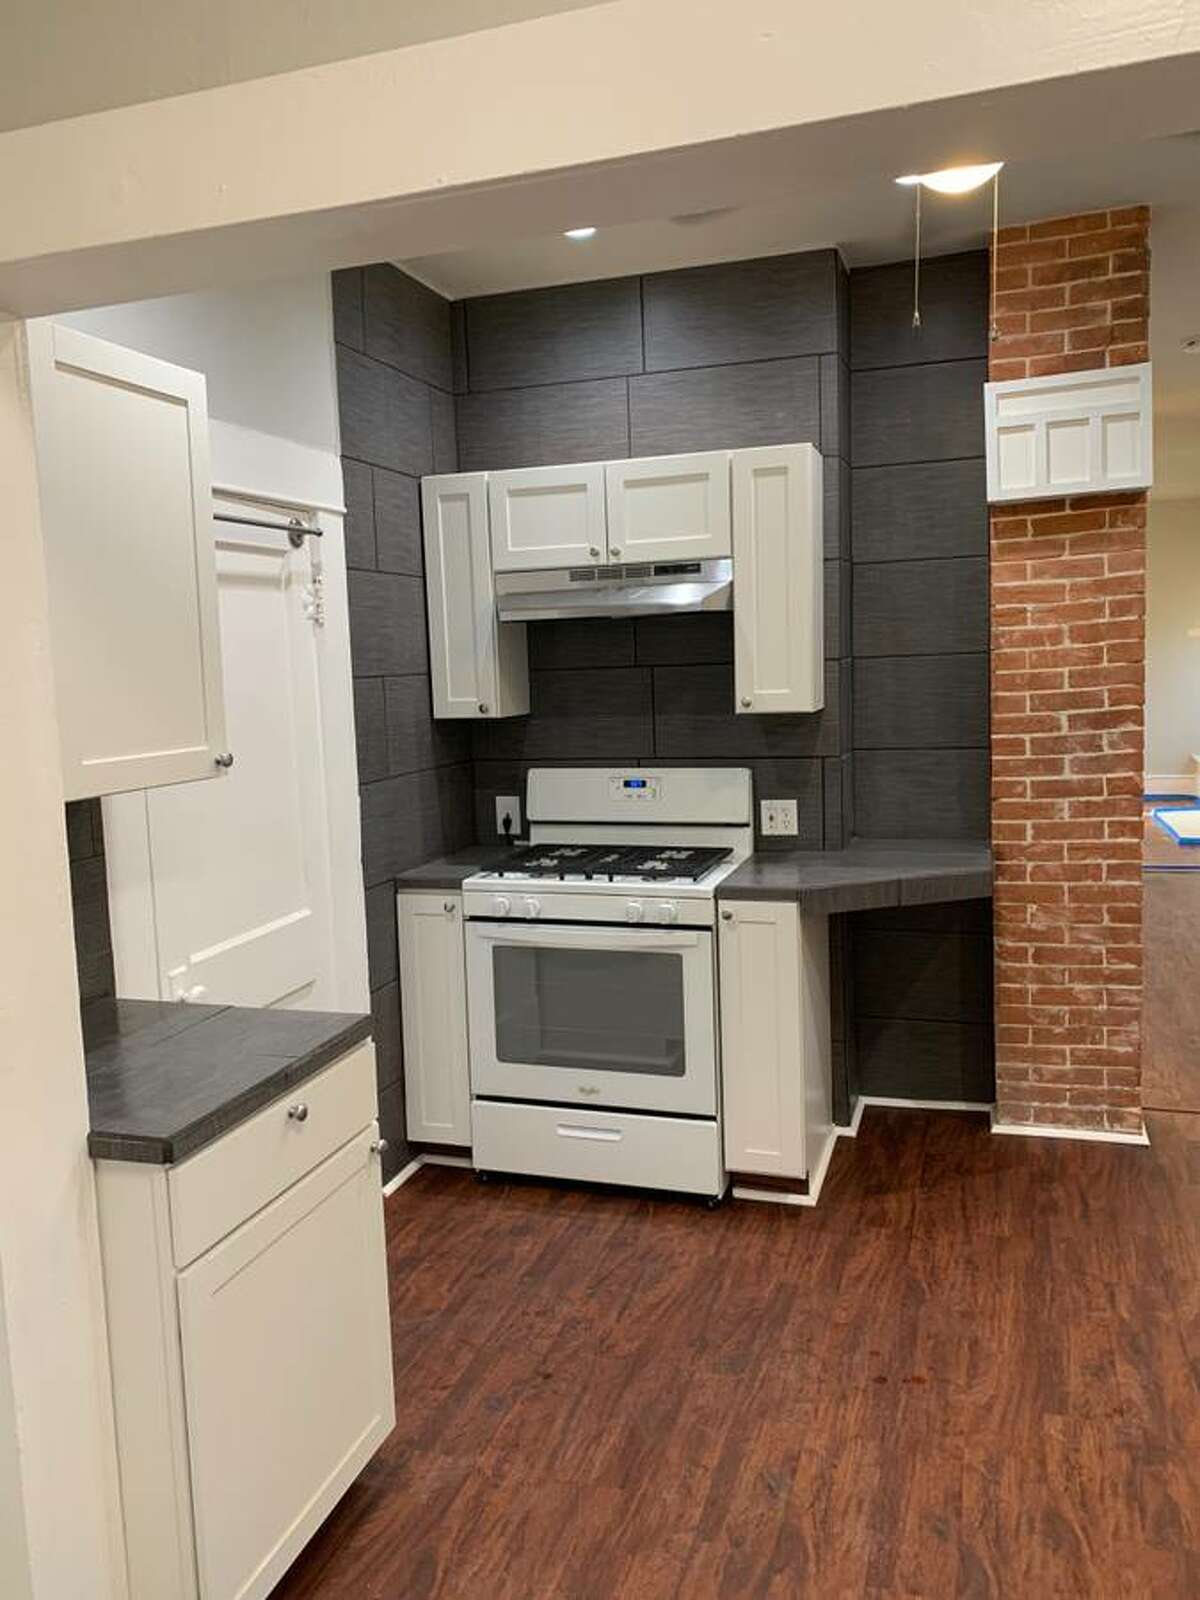 Here's a look at the stove, which has a floor-to-ceiling backsplash.